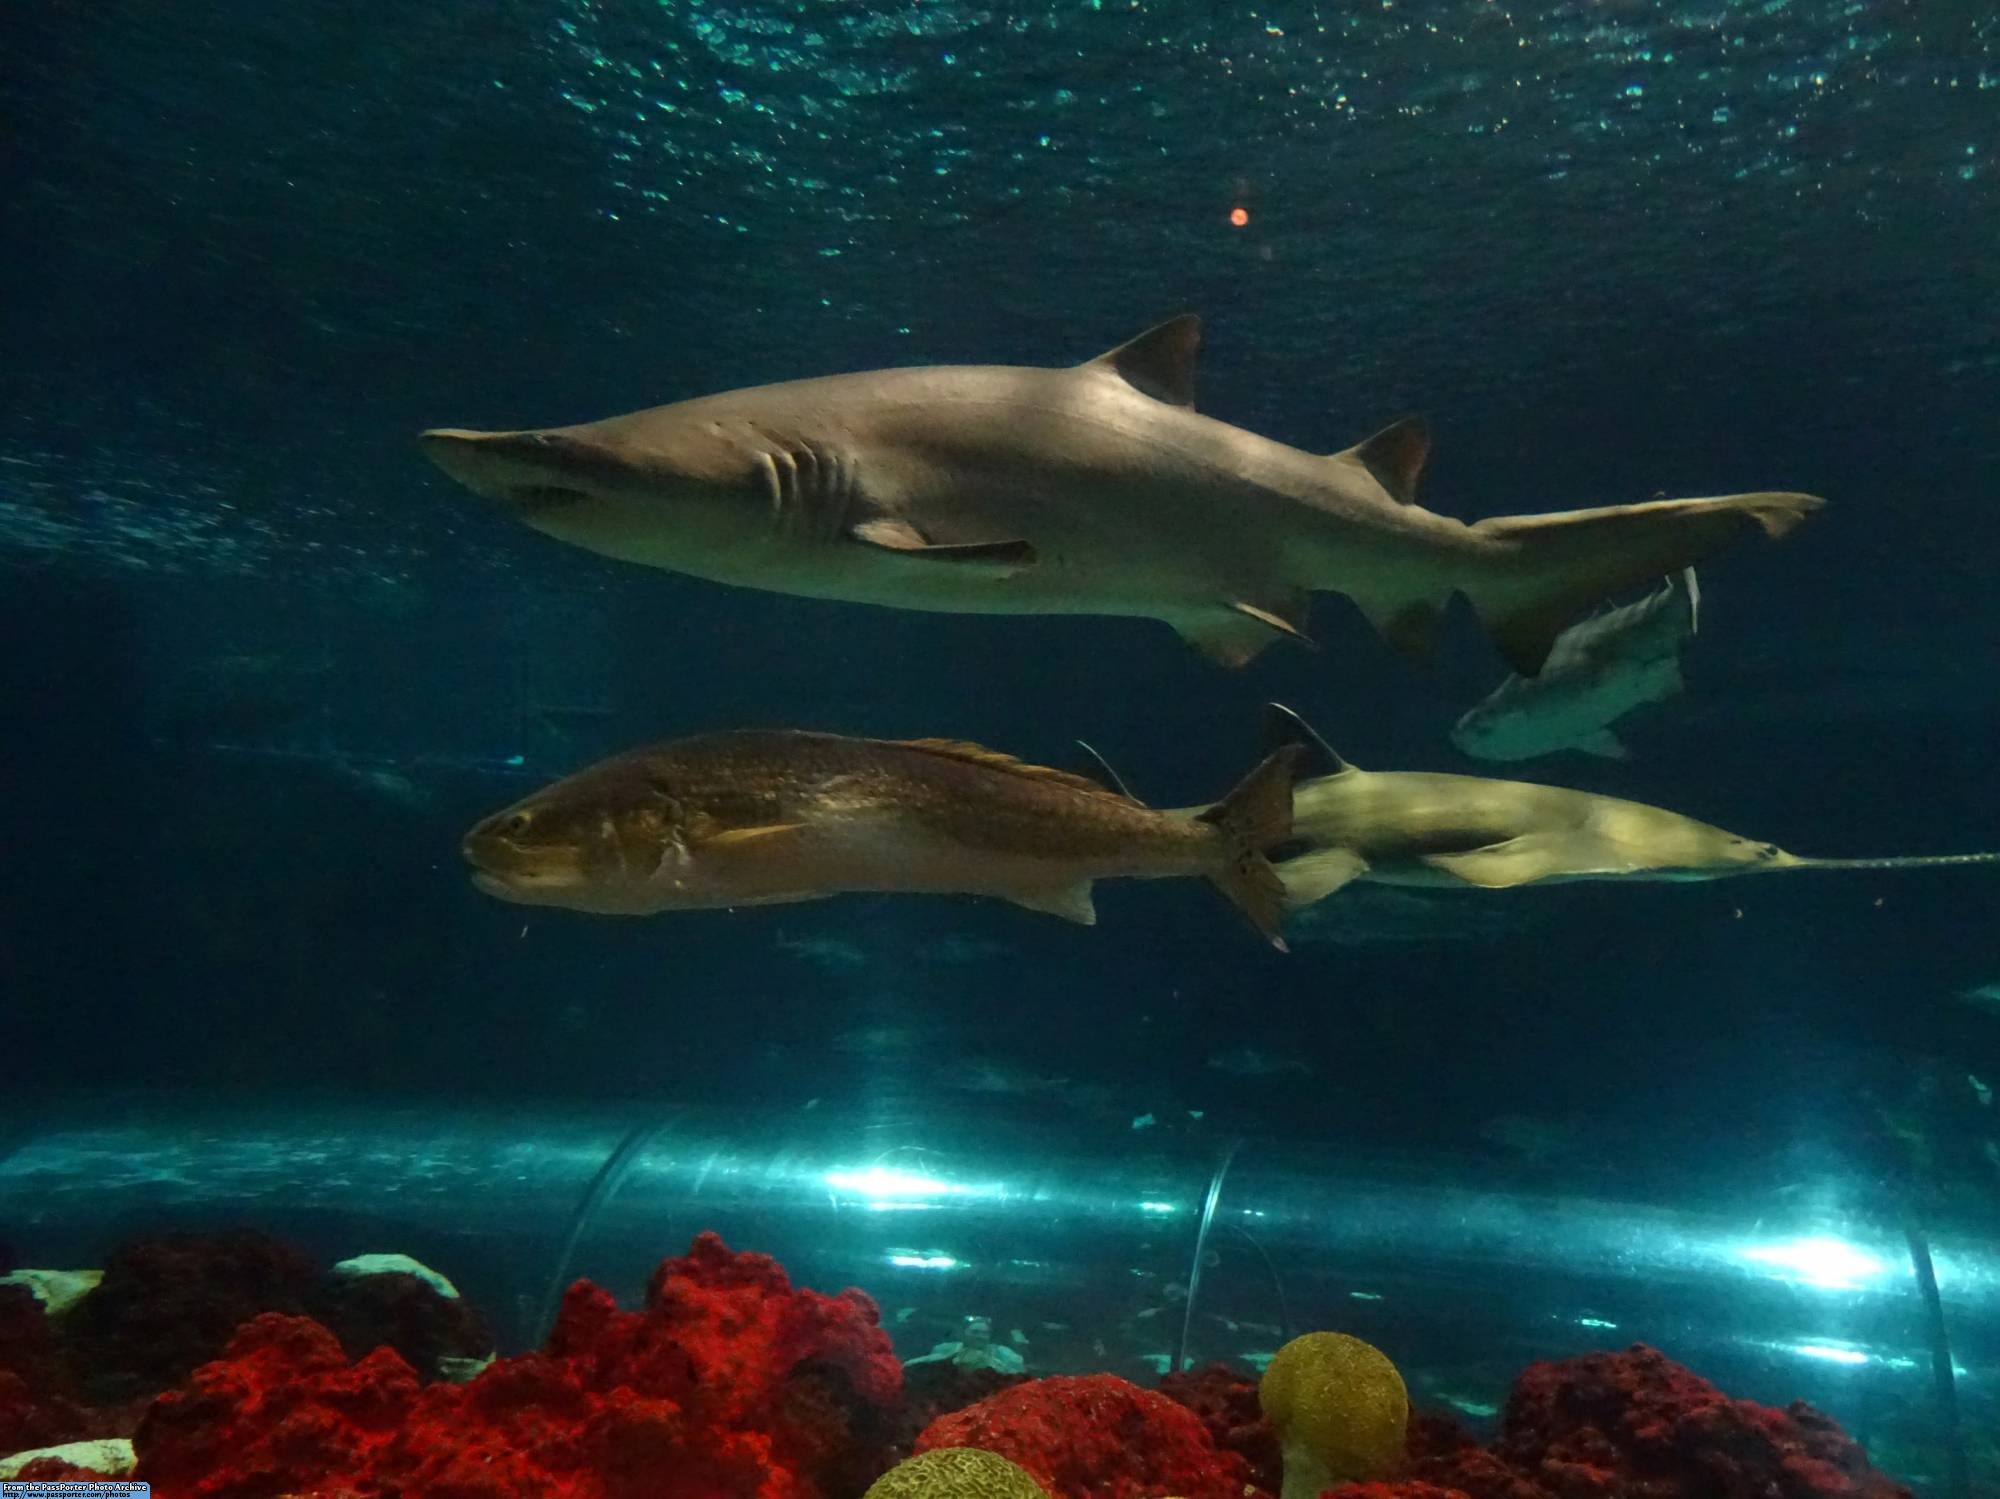 Dine with the sharks at SeaWorld Orlando |PassPorter.com